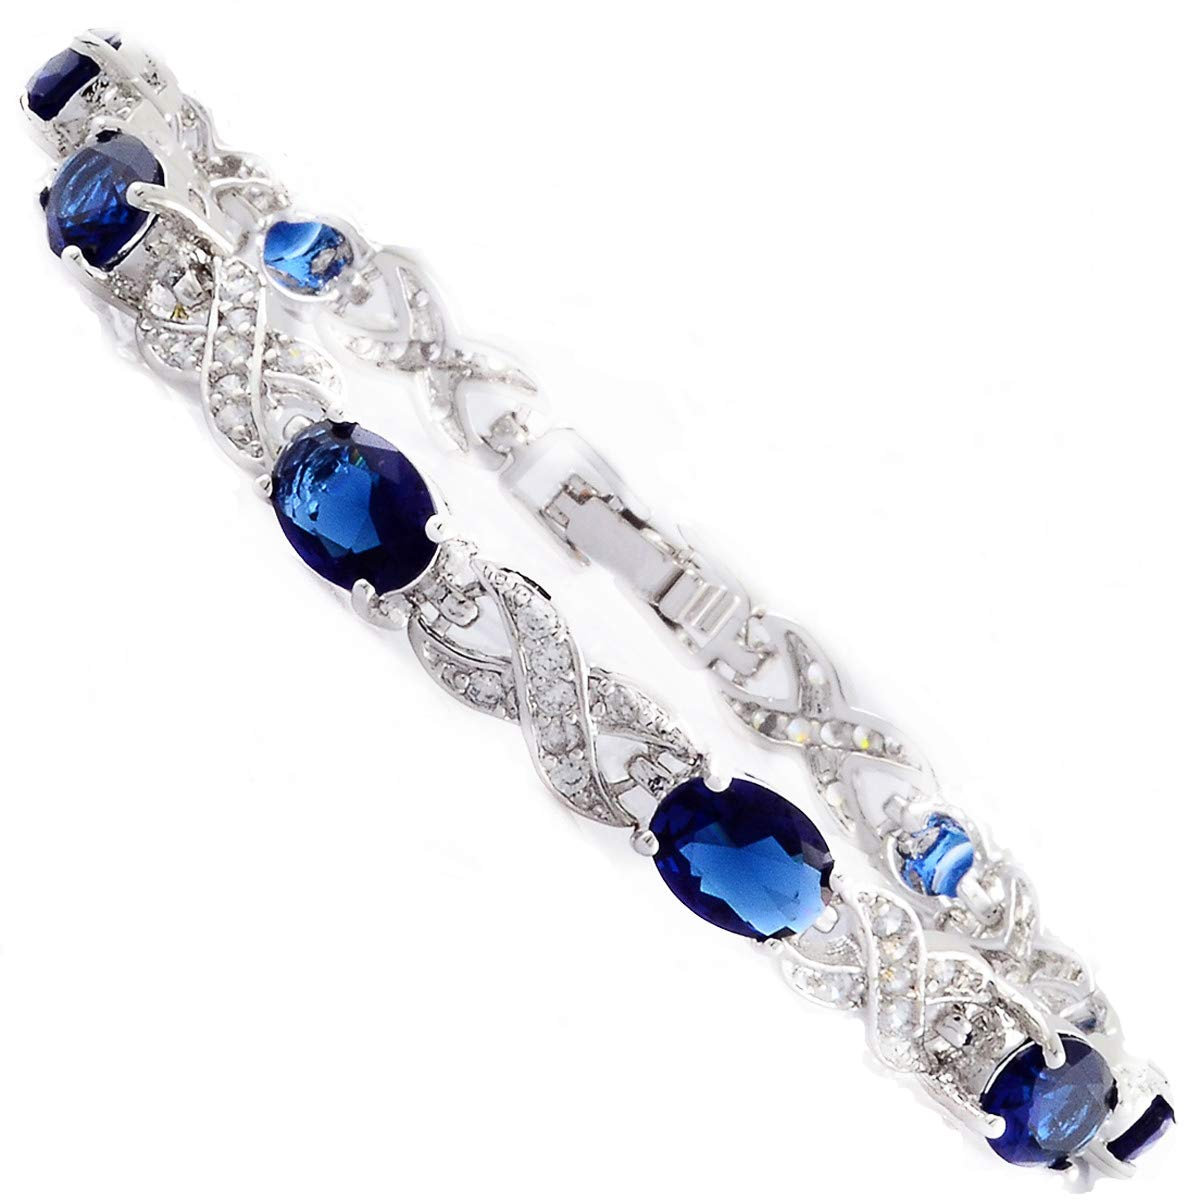 RIZILIA Tennis Bracelet & Oval Cut CZ [Simulated Blue Sapphire] in White Gold Plated, 7 7 LB1274BLU